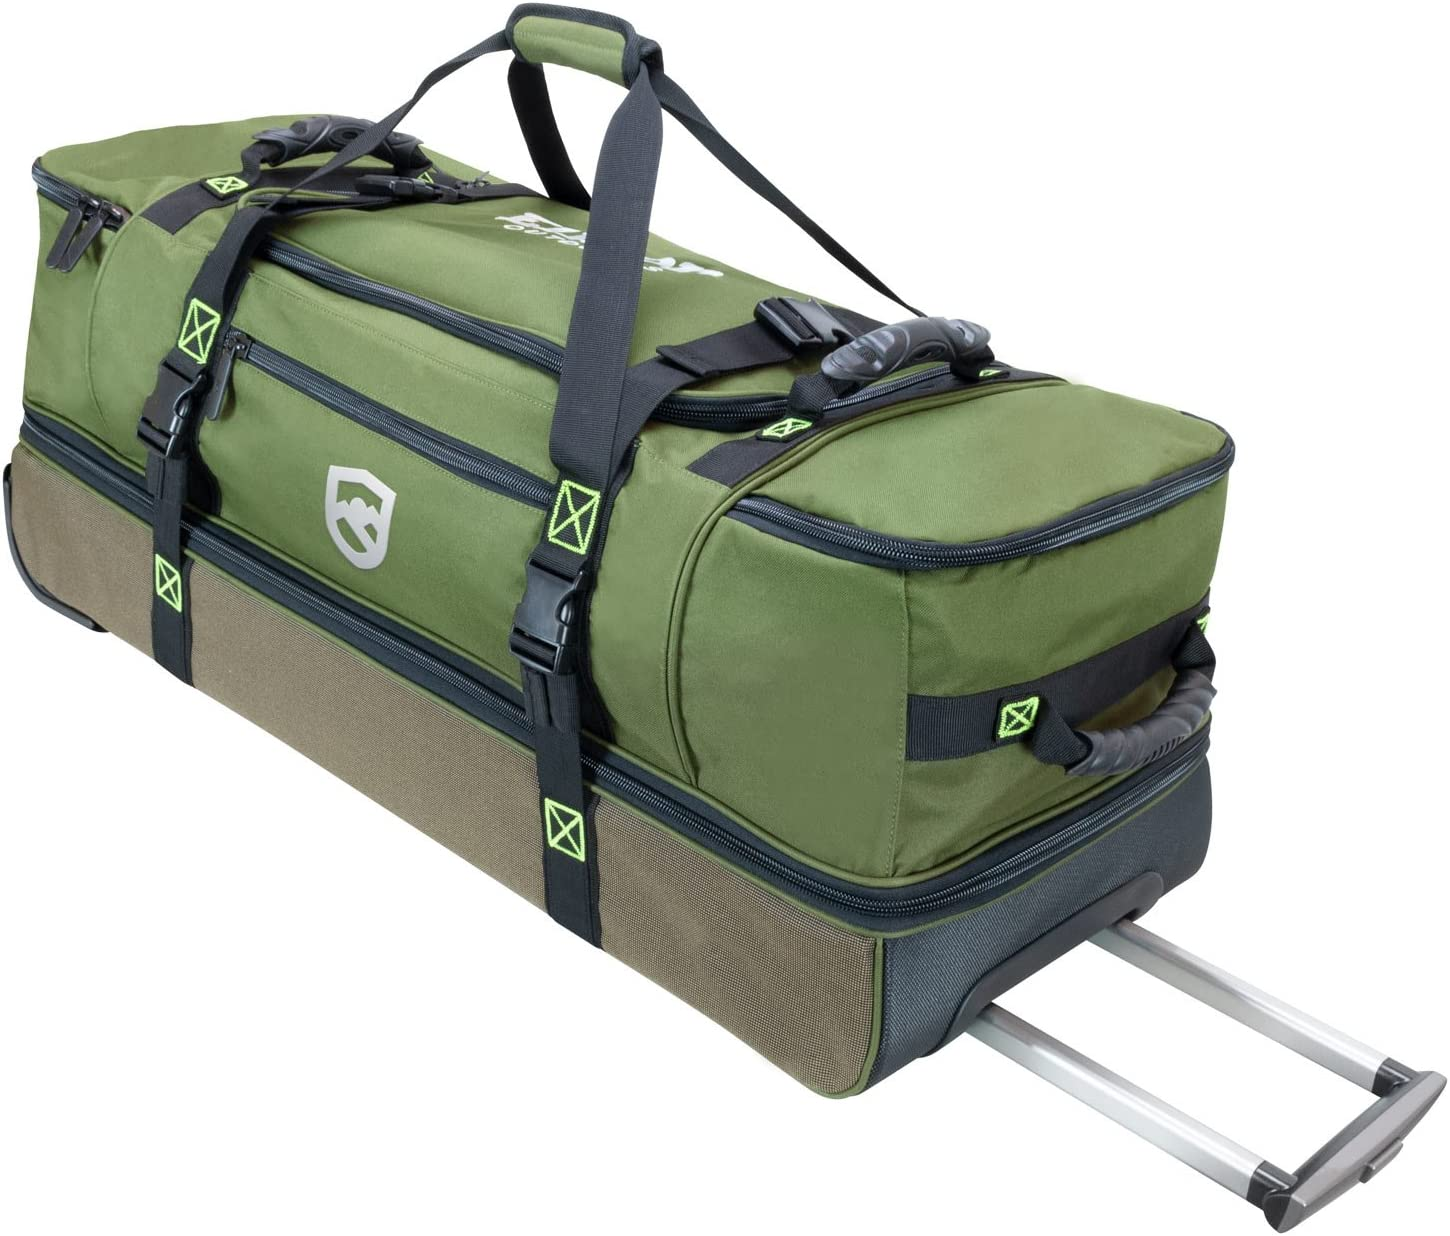 Elkton Outdoors Rolling Fishing Duffle Bag with Wet, Dry Gear Pockets and Retractable Handle, 37 x 14 x 13.5 inches, Holds and Organizes Gear, Bait, Cargo and Tackle